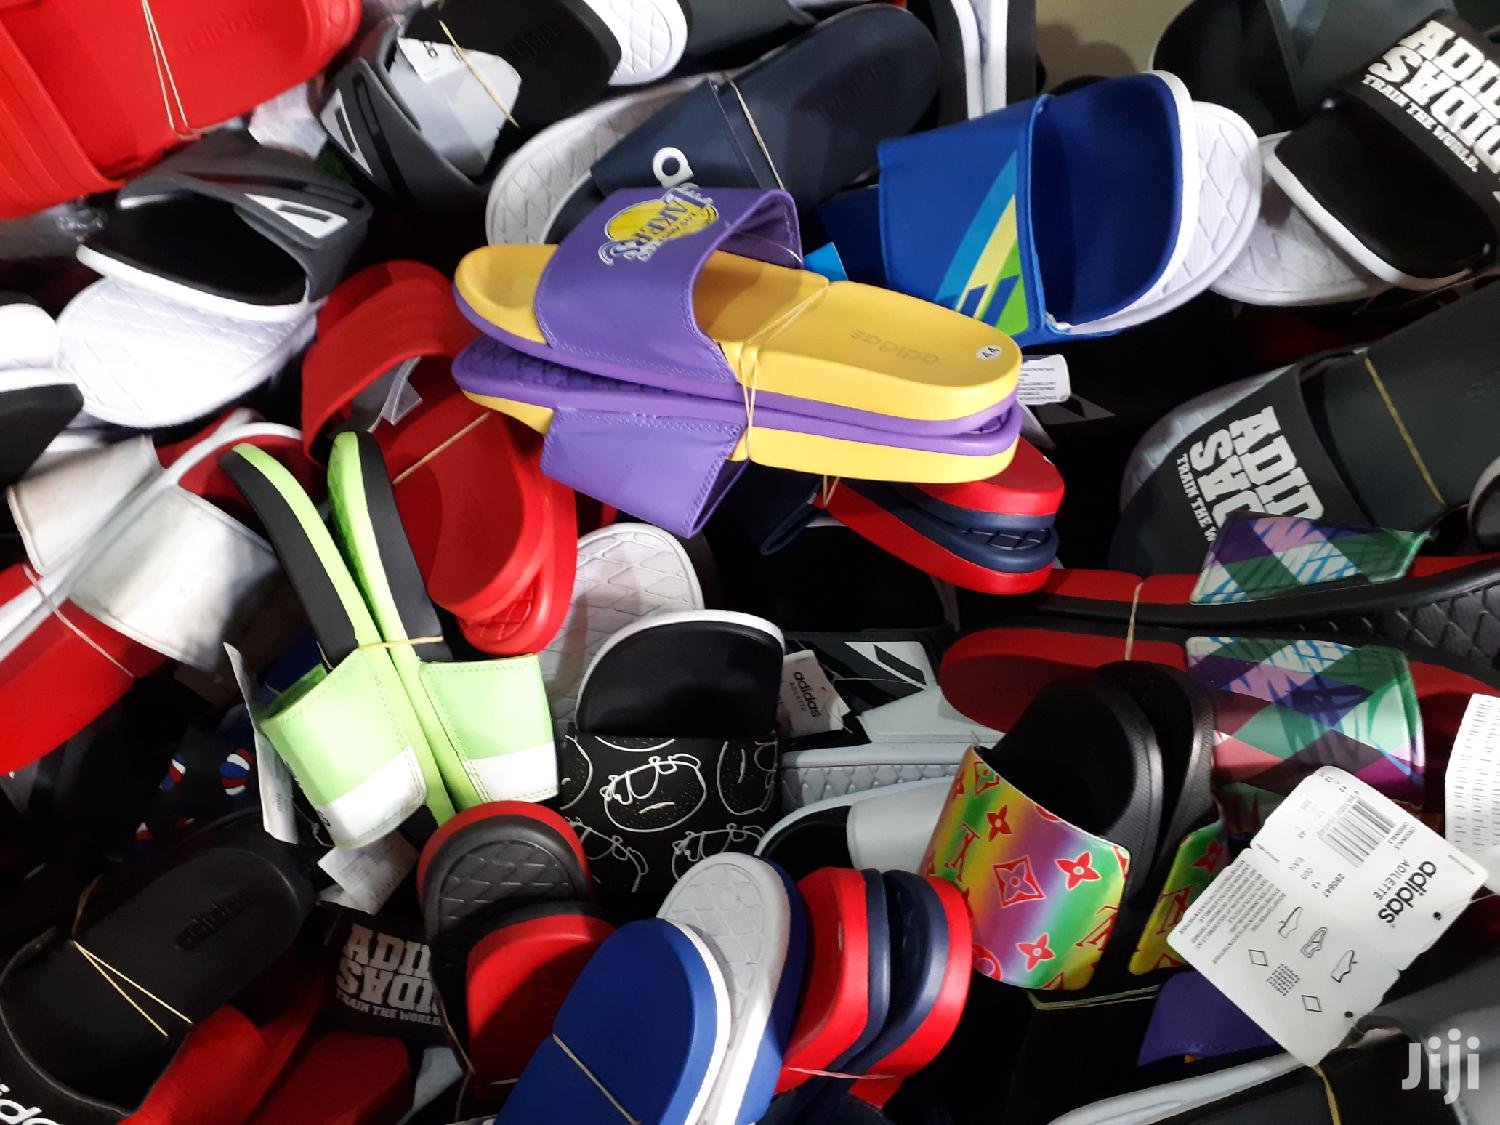 Original Slides At Cool Price | Sports Equipment for sale in Dansoman, Greater Accra, Ghana